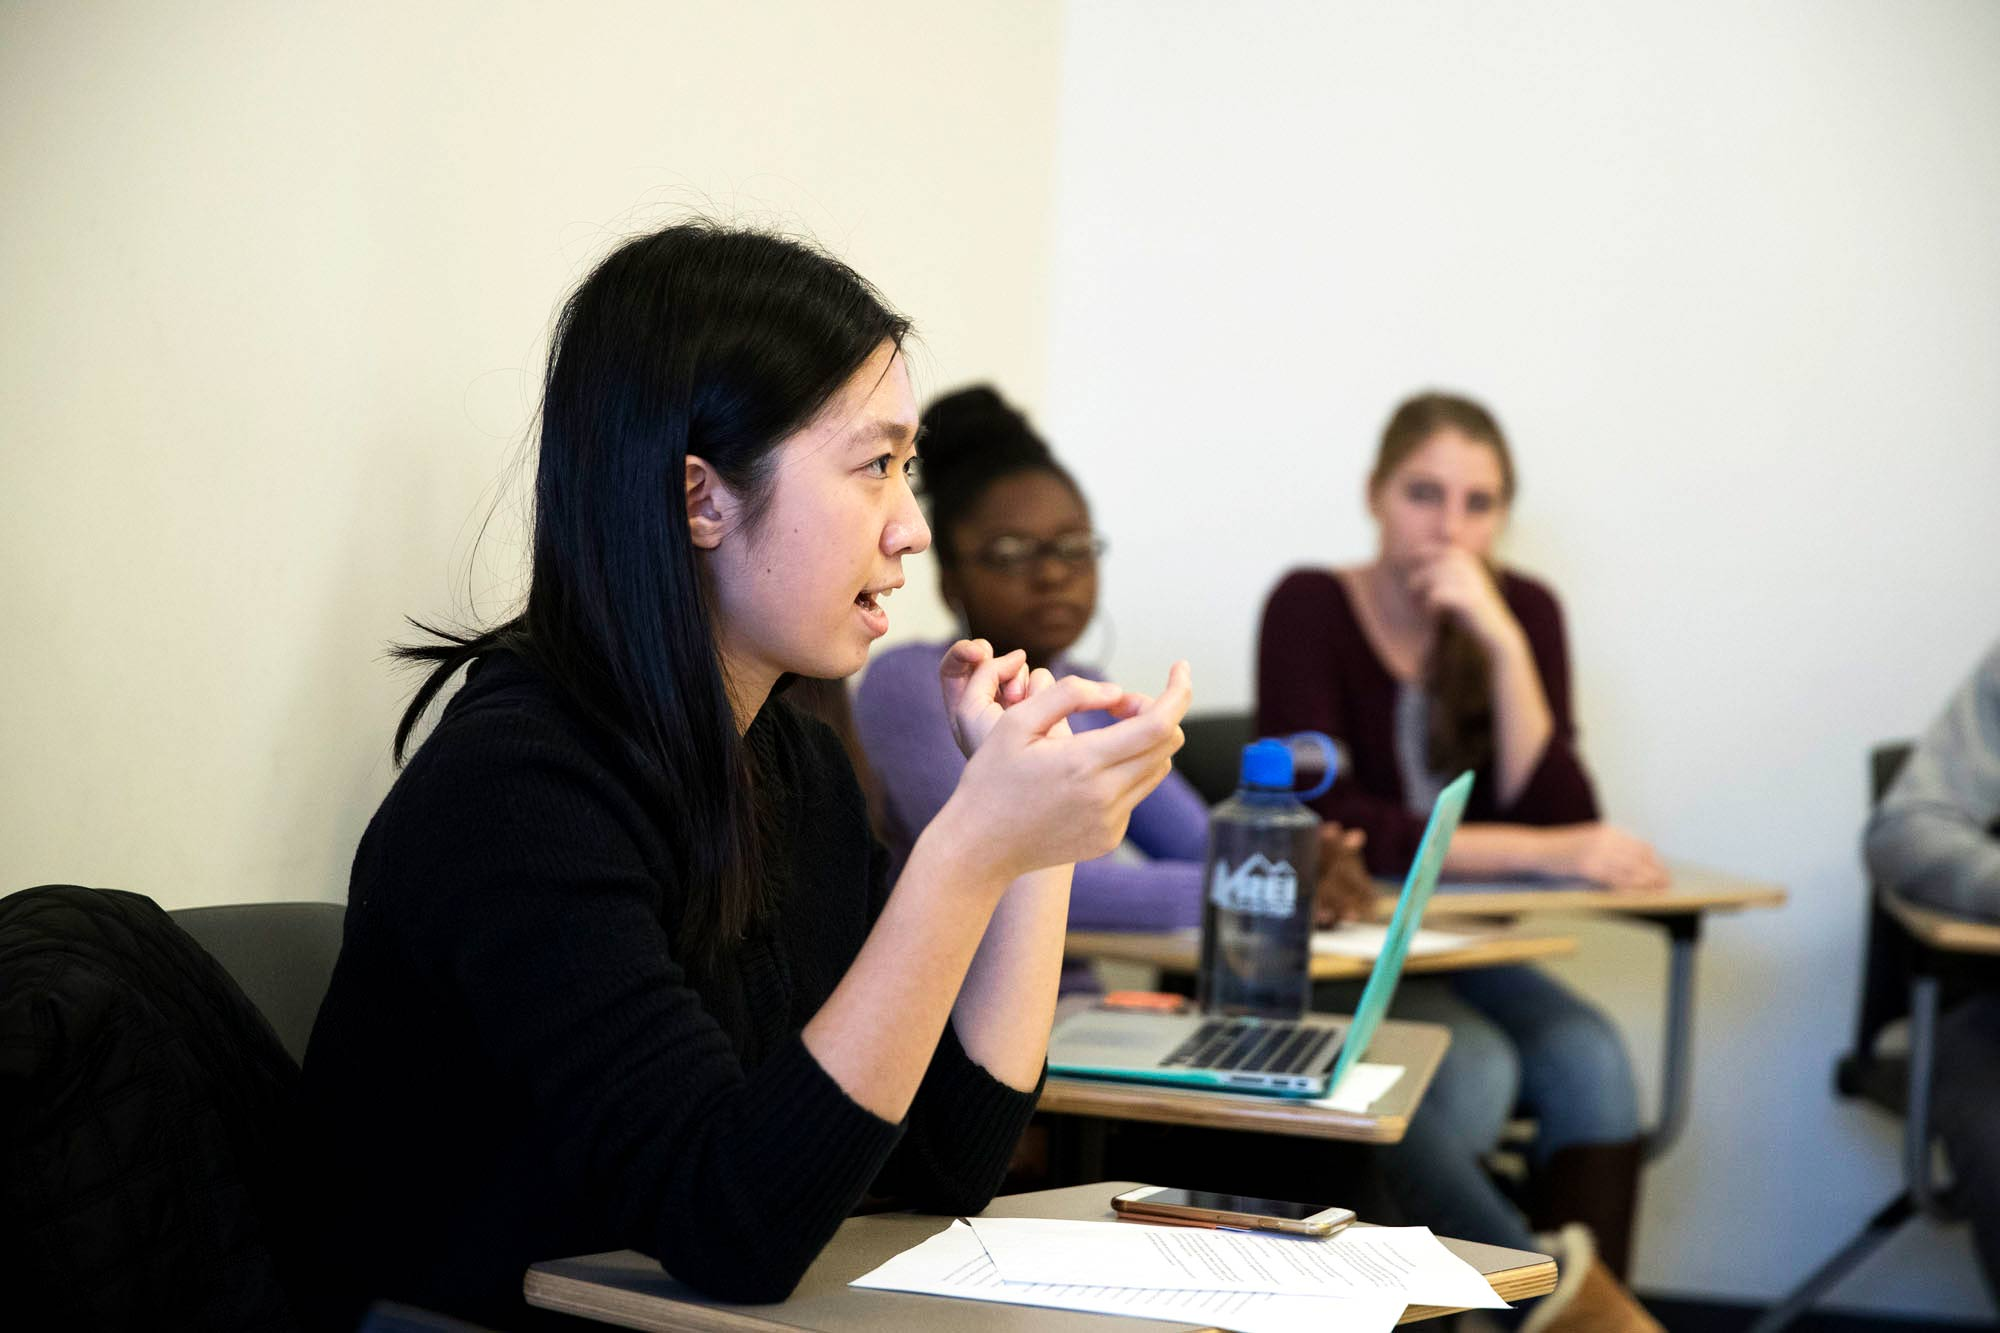 First-year student Yayi Feng, above, and other students talked about different resources, groups and events on Grounds that they discovered through Horne's course.